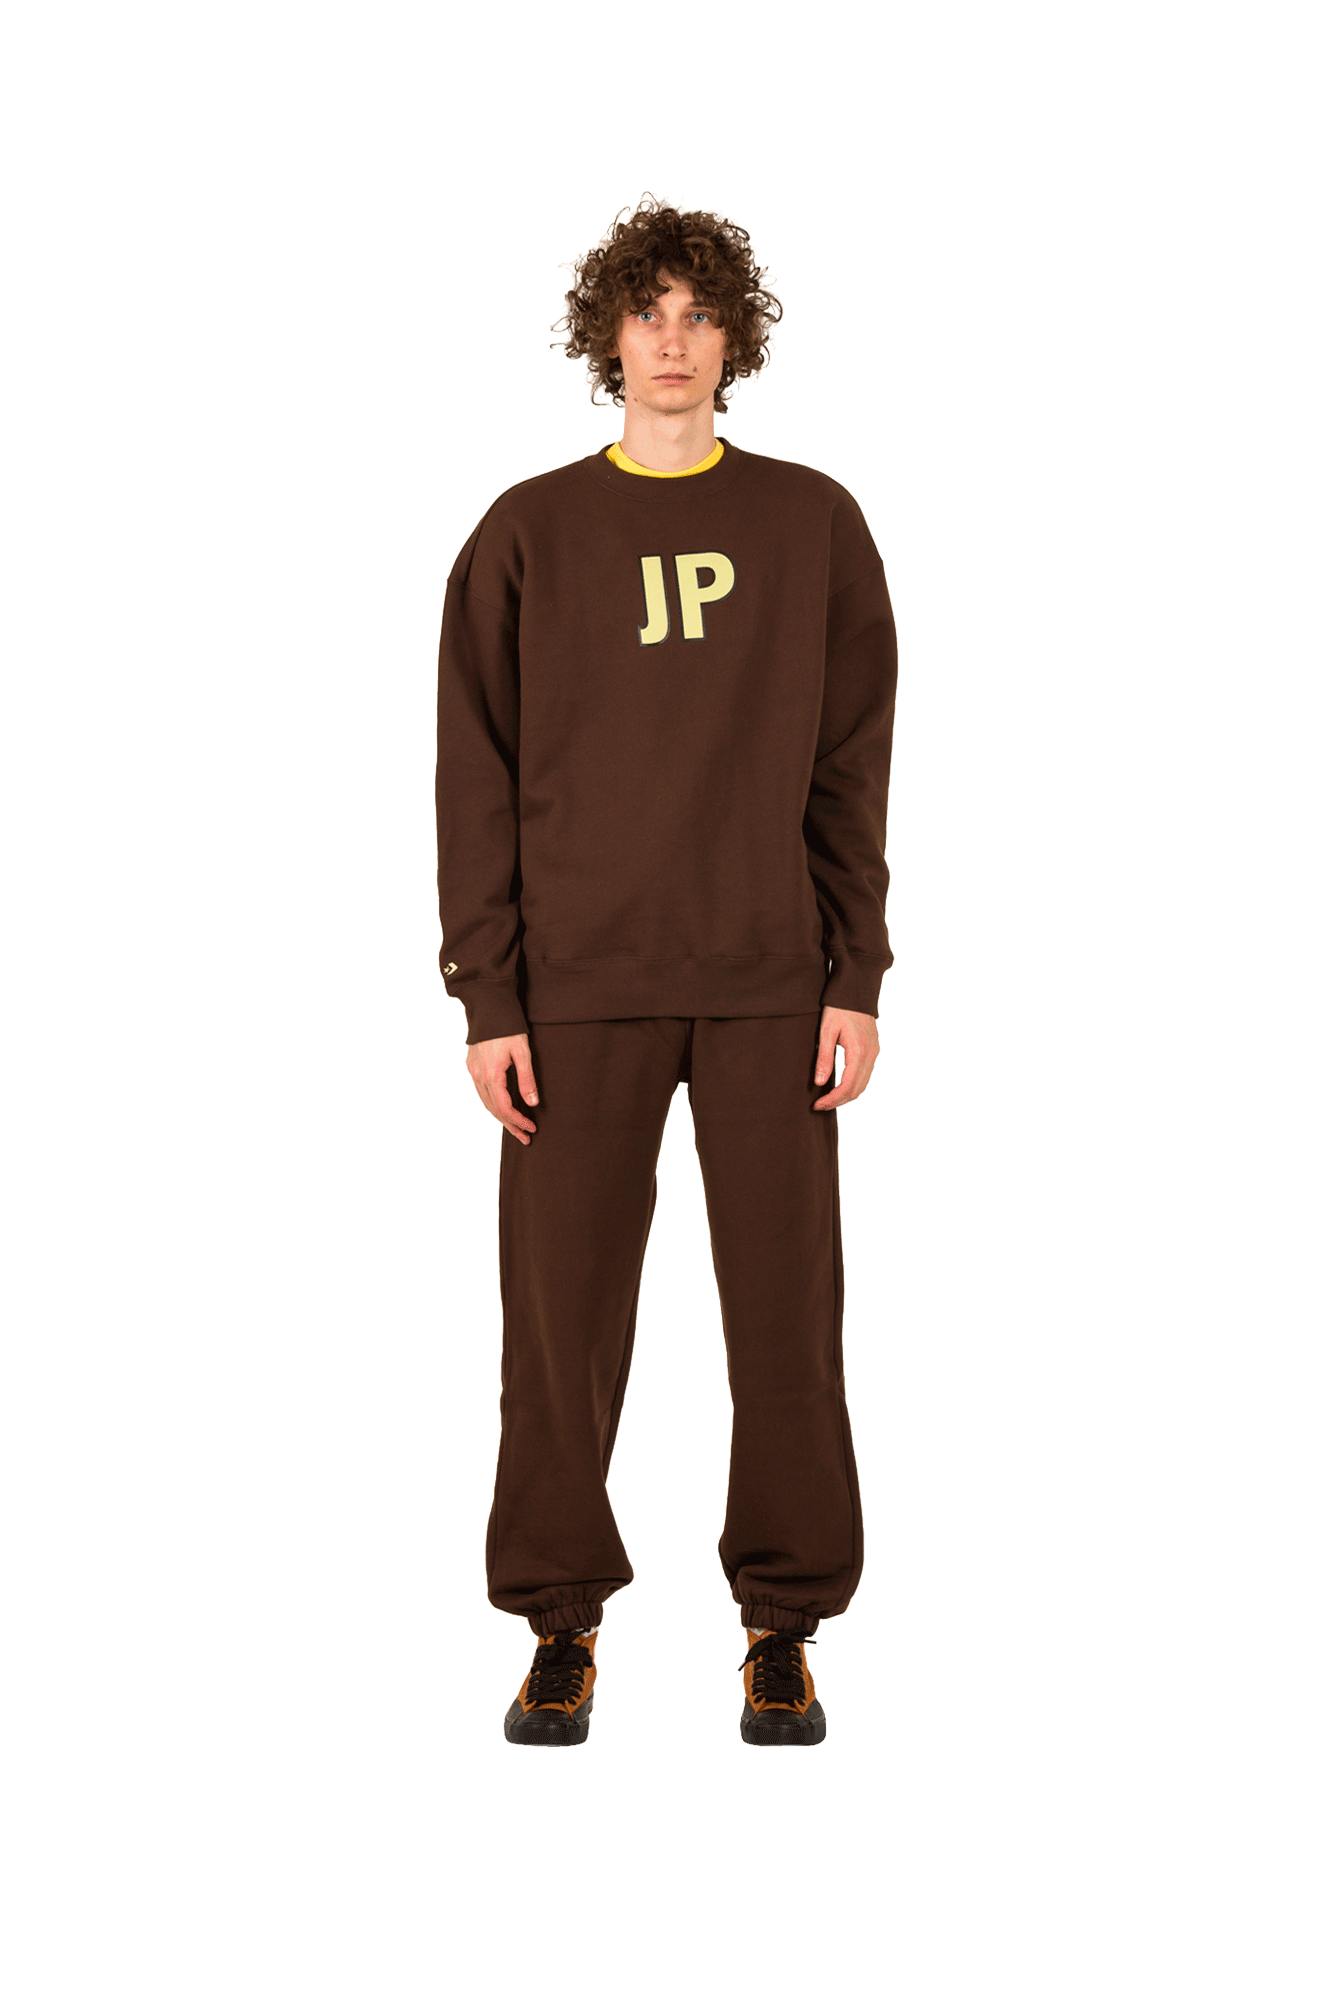 Converse Sweaters Crew Sweatshirt X ASAP NAST Brown 10017741#A02#267#M - One Block Down